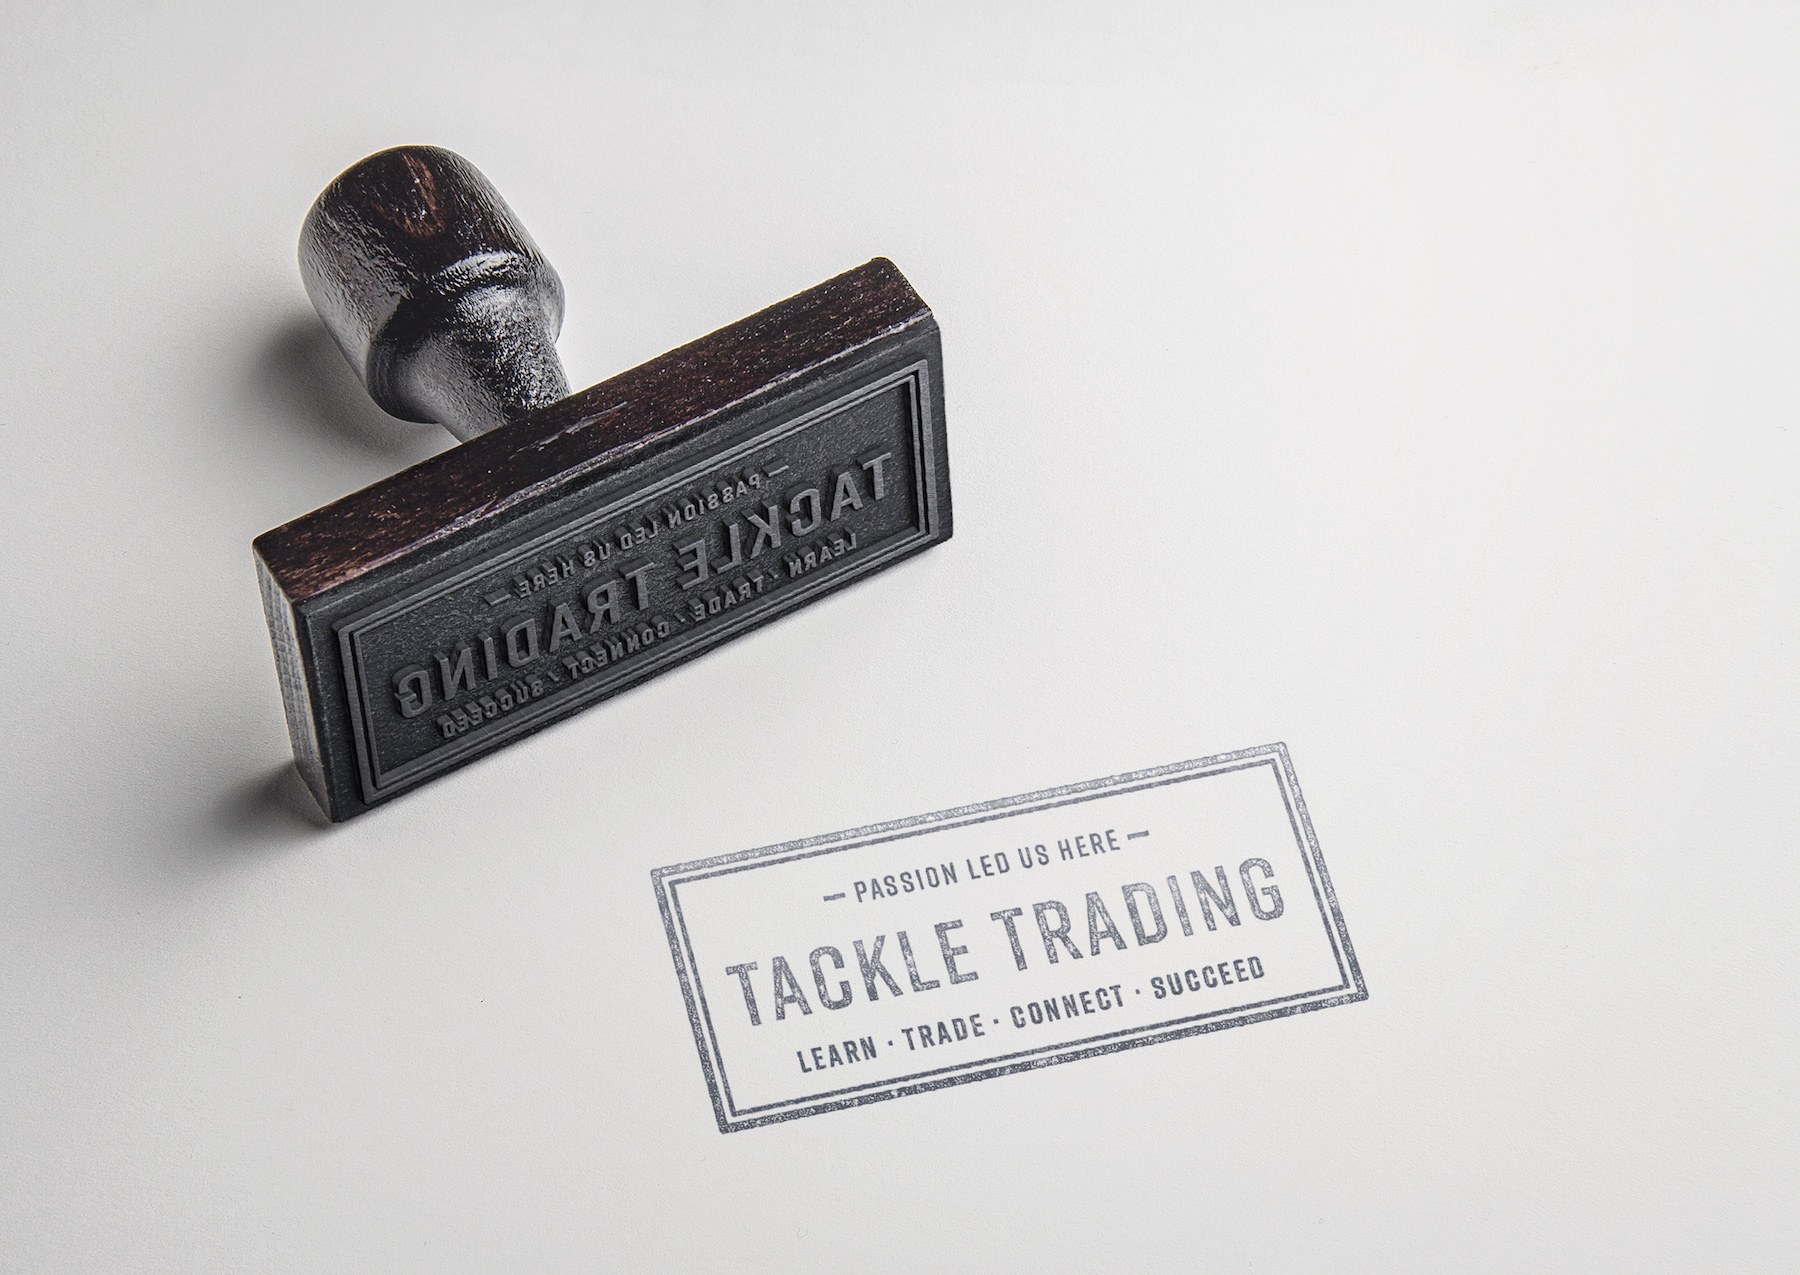 Friday Feature: 3 Reasons Why I Appreciate Tackle Trading